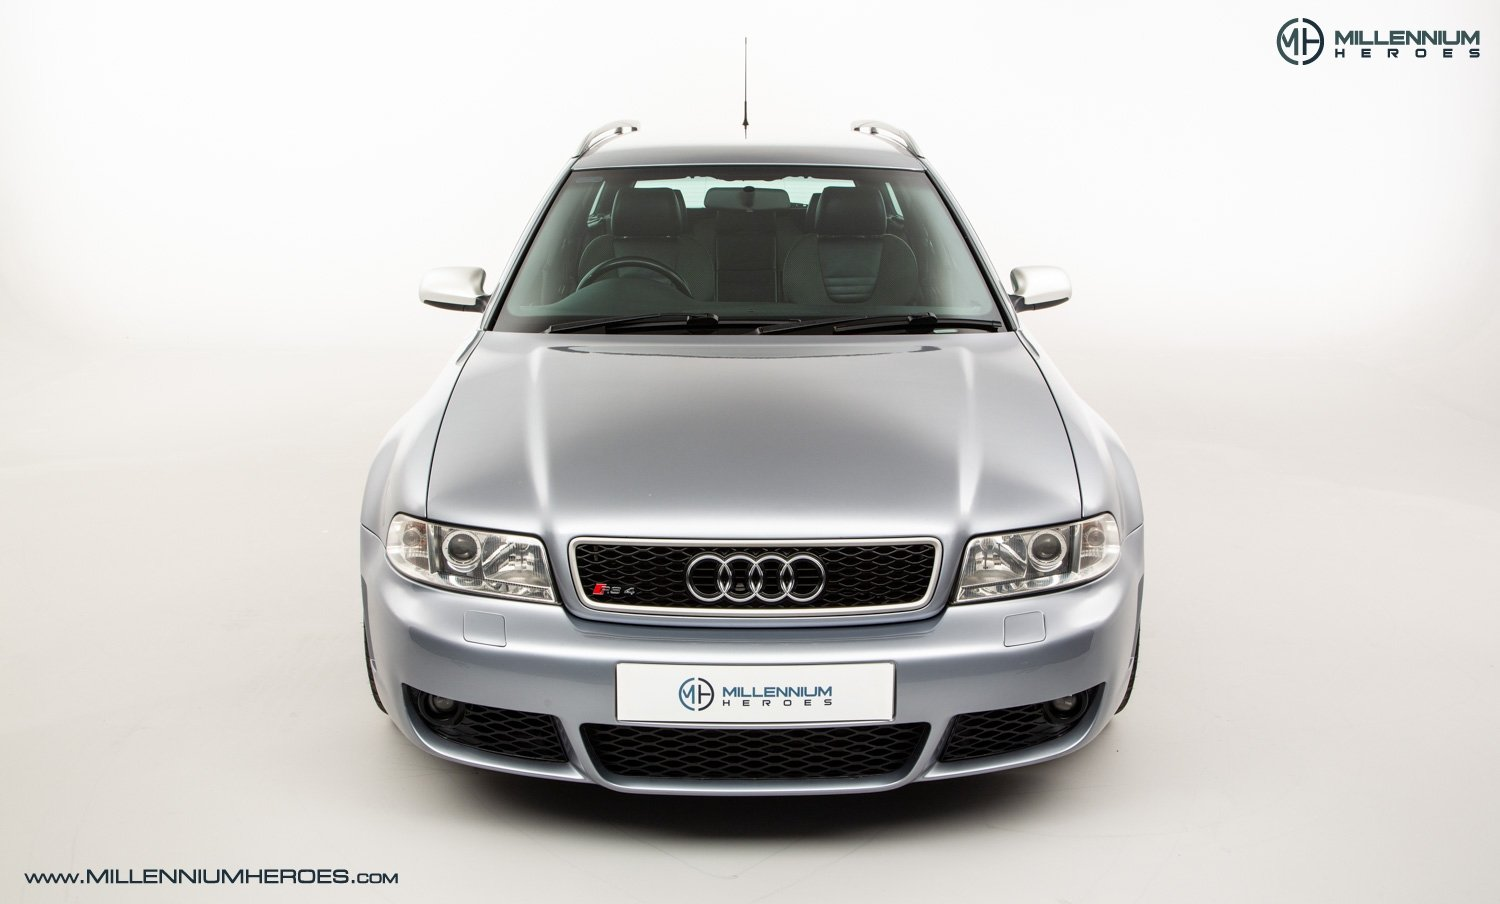 2001 AUDI B5 RS4 AVANT // 95K MILES // AVUS SILVER For Sale (picture 3 of 28)